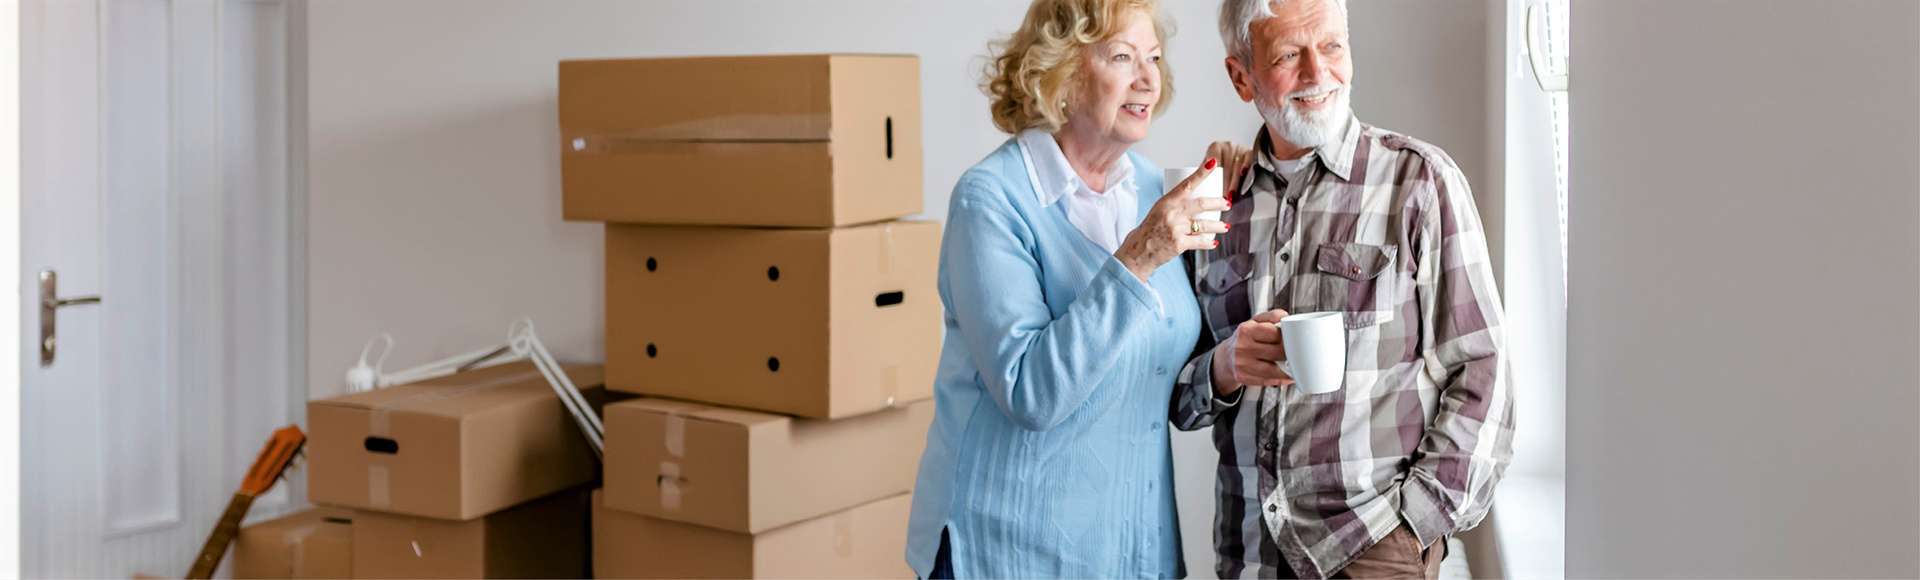 Elderly couple stand in a room surrounded by boxes.